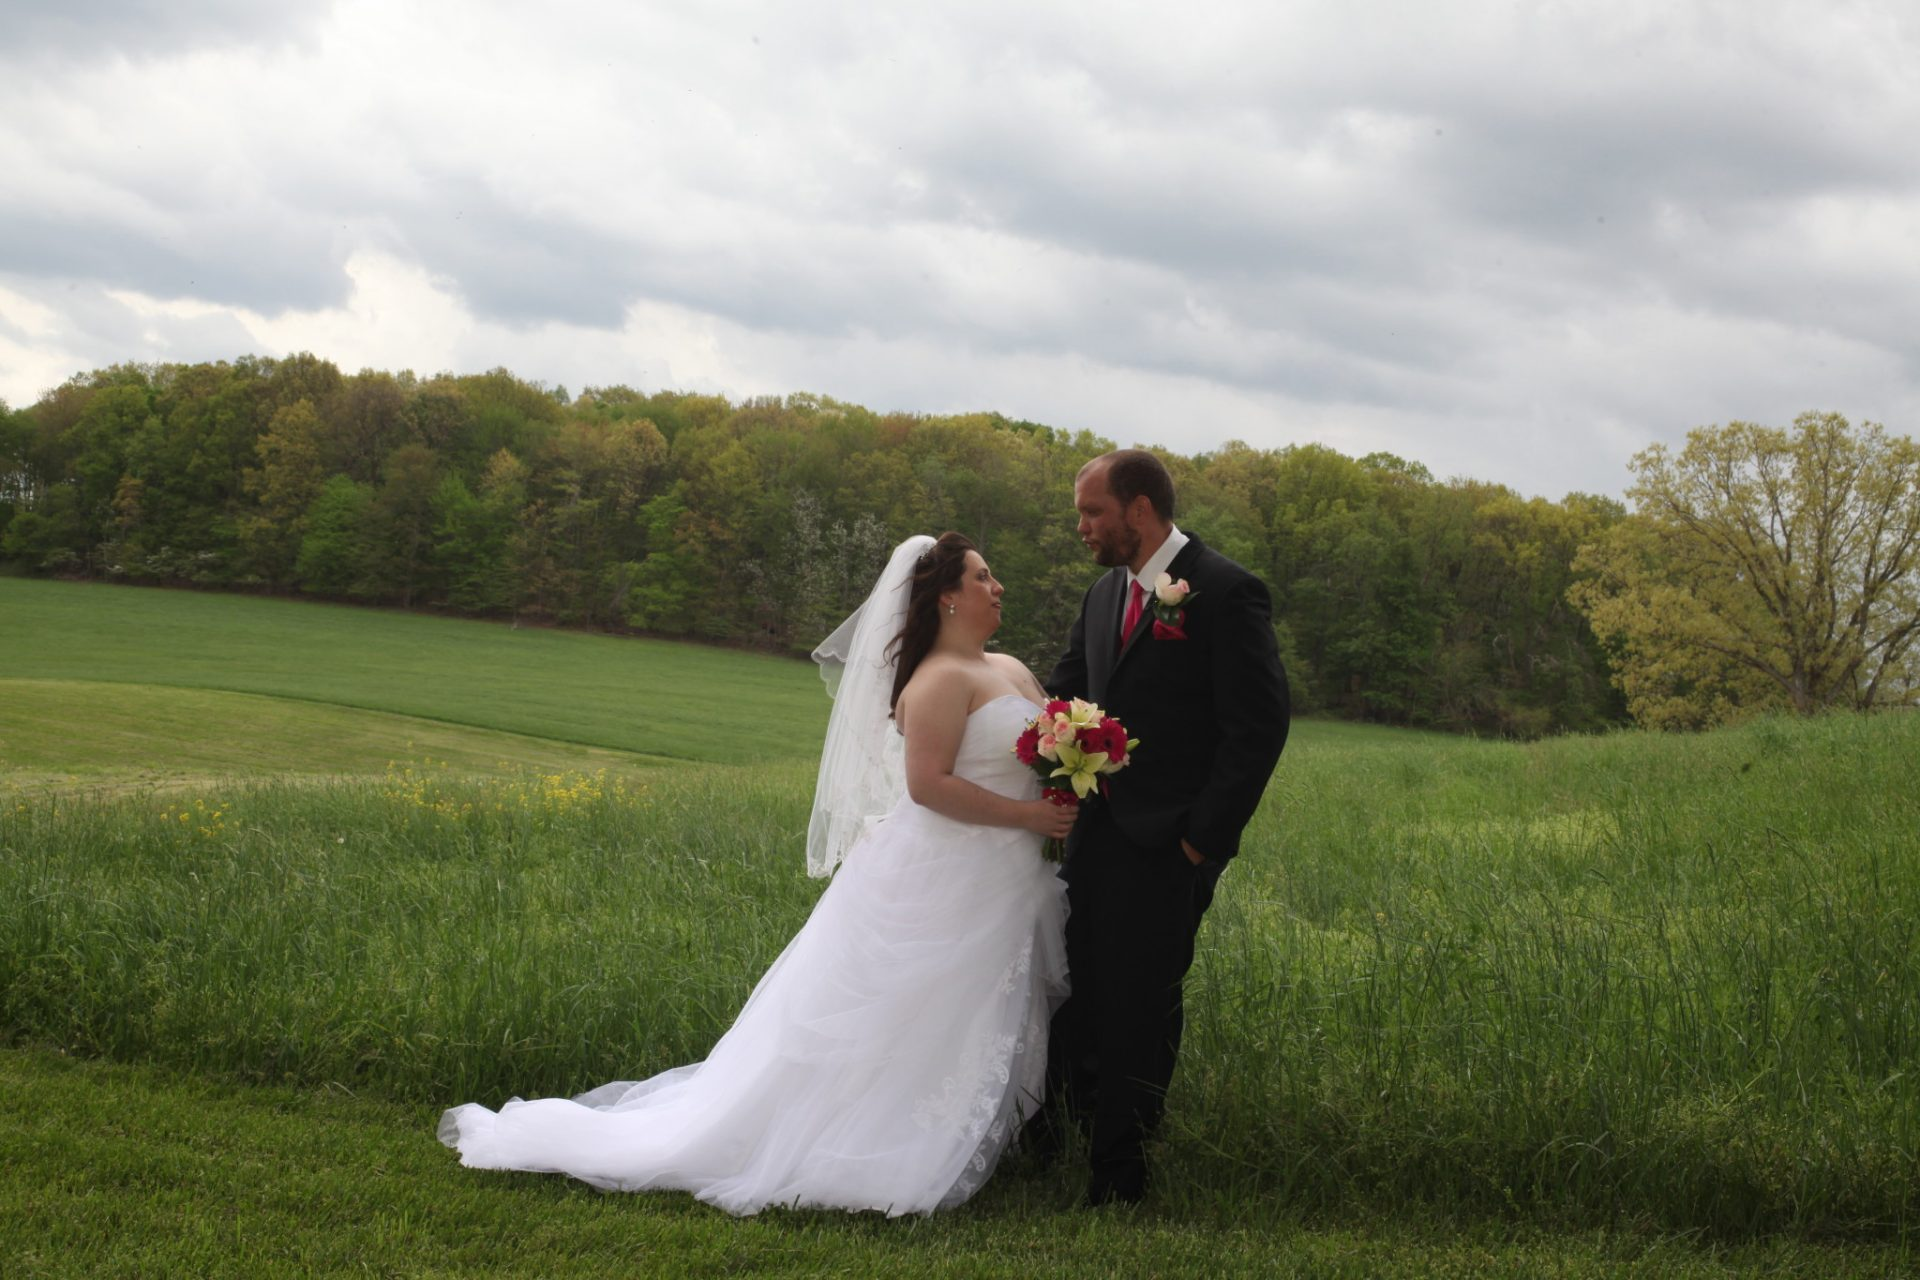 Outside wedding at Morningside Inn, bride and groom pose with rolling hills as backdrop